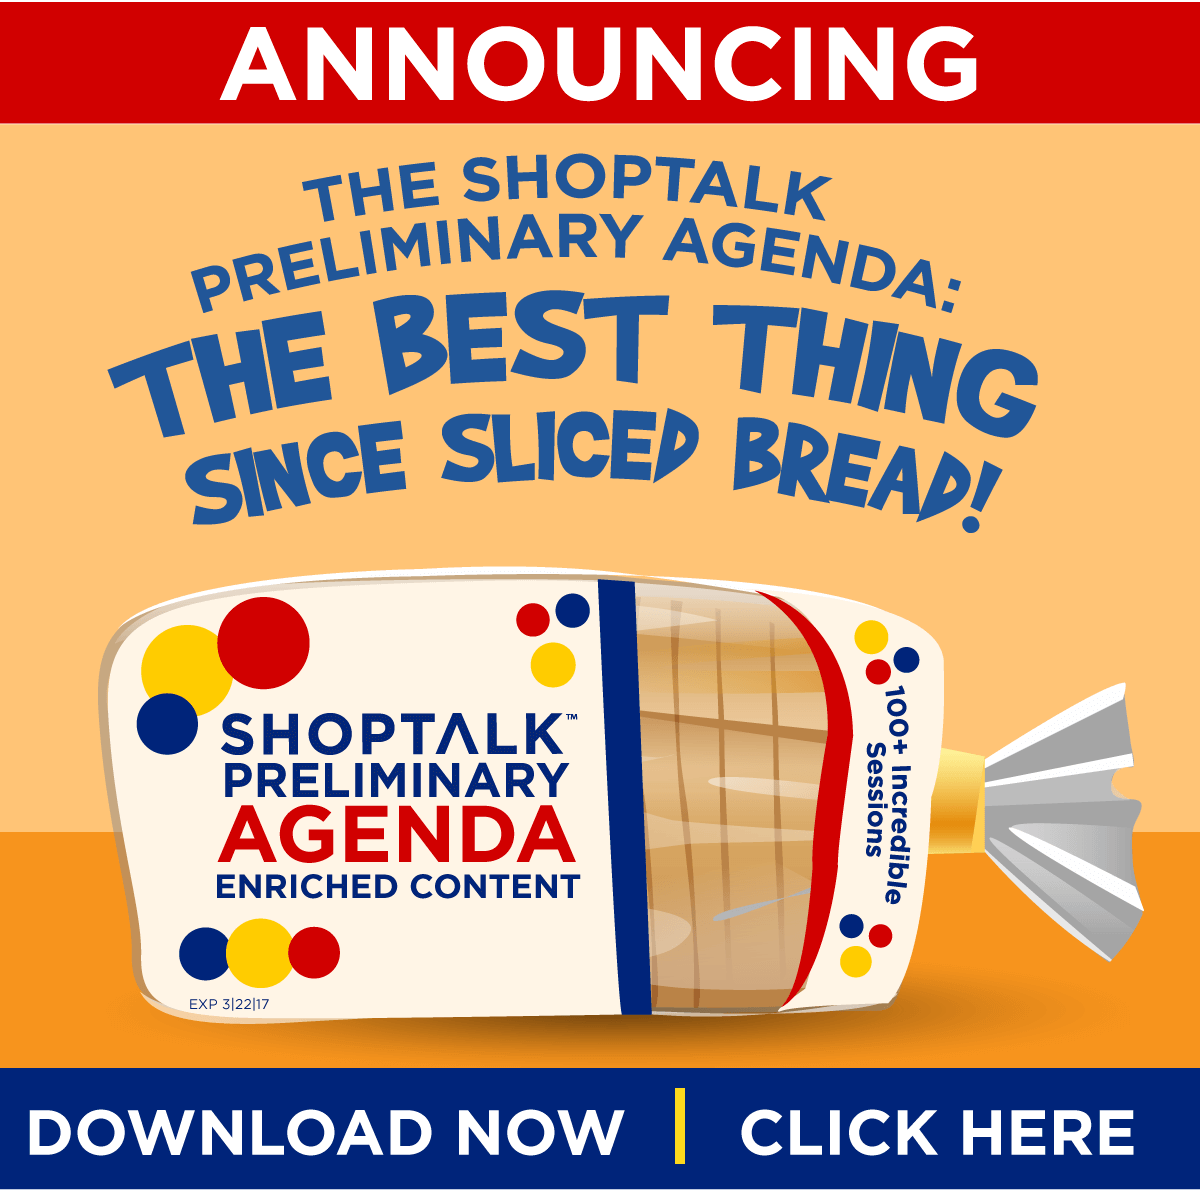 Shoptalk's Preliminary Agenda